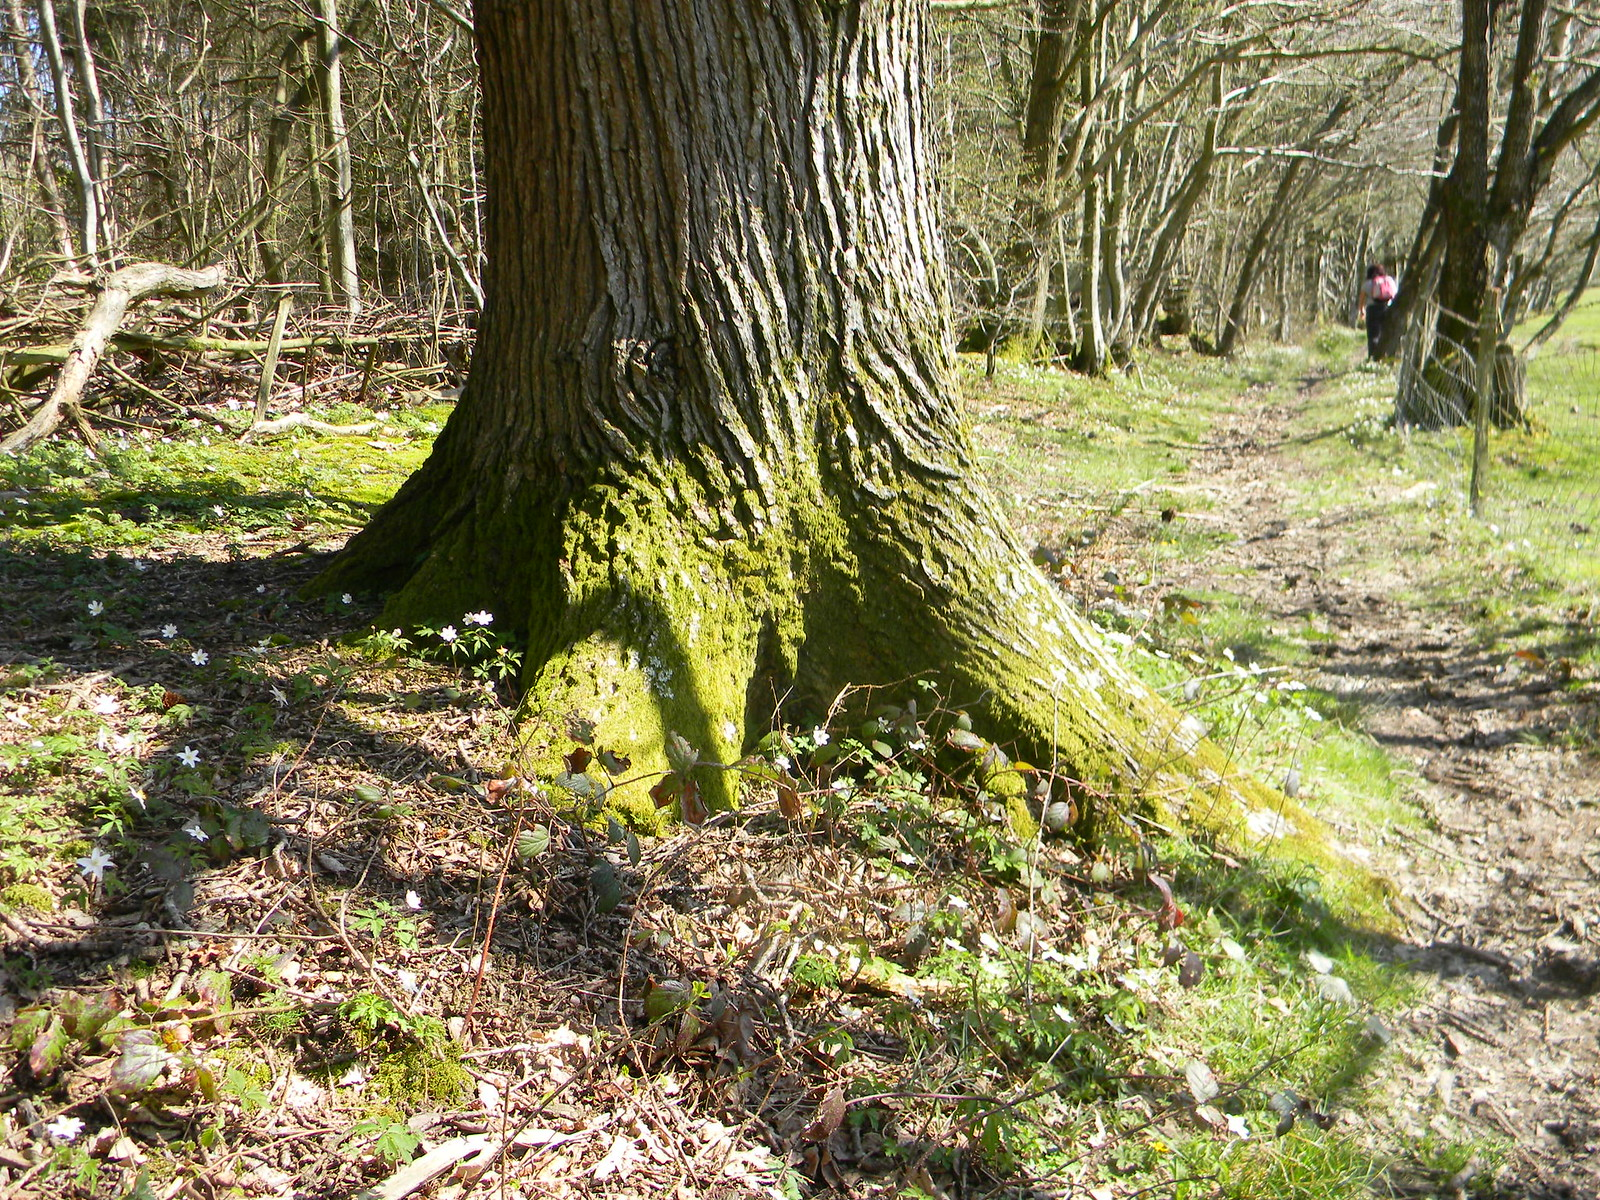 Treestump Robertsbridge to Battle